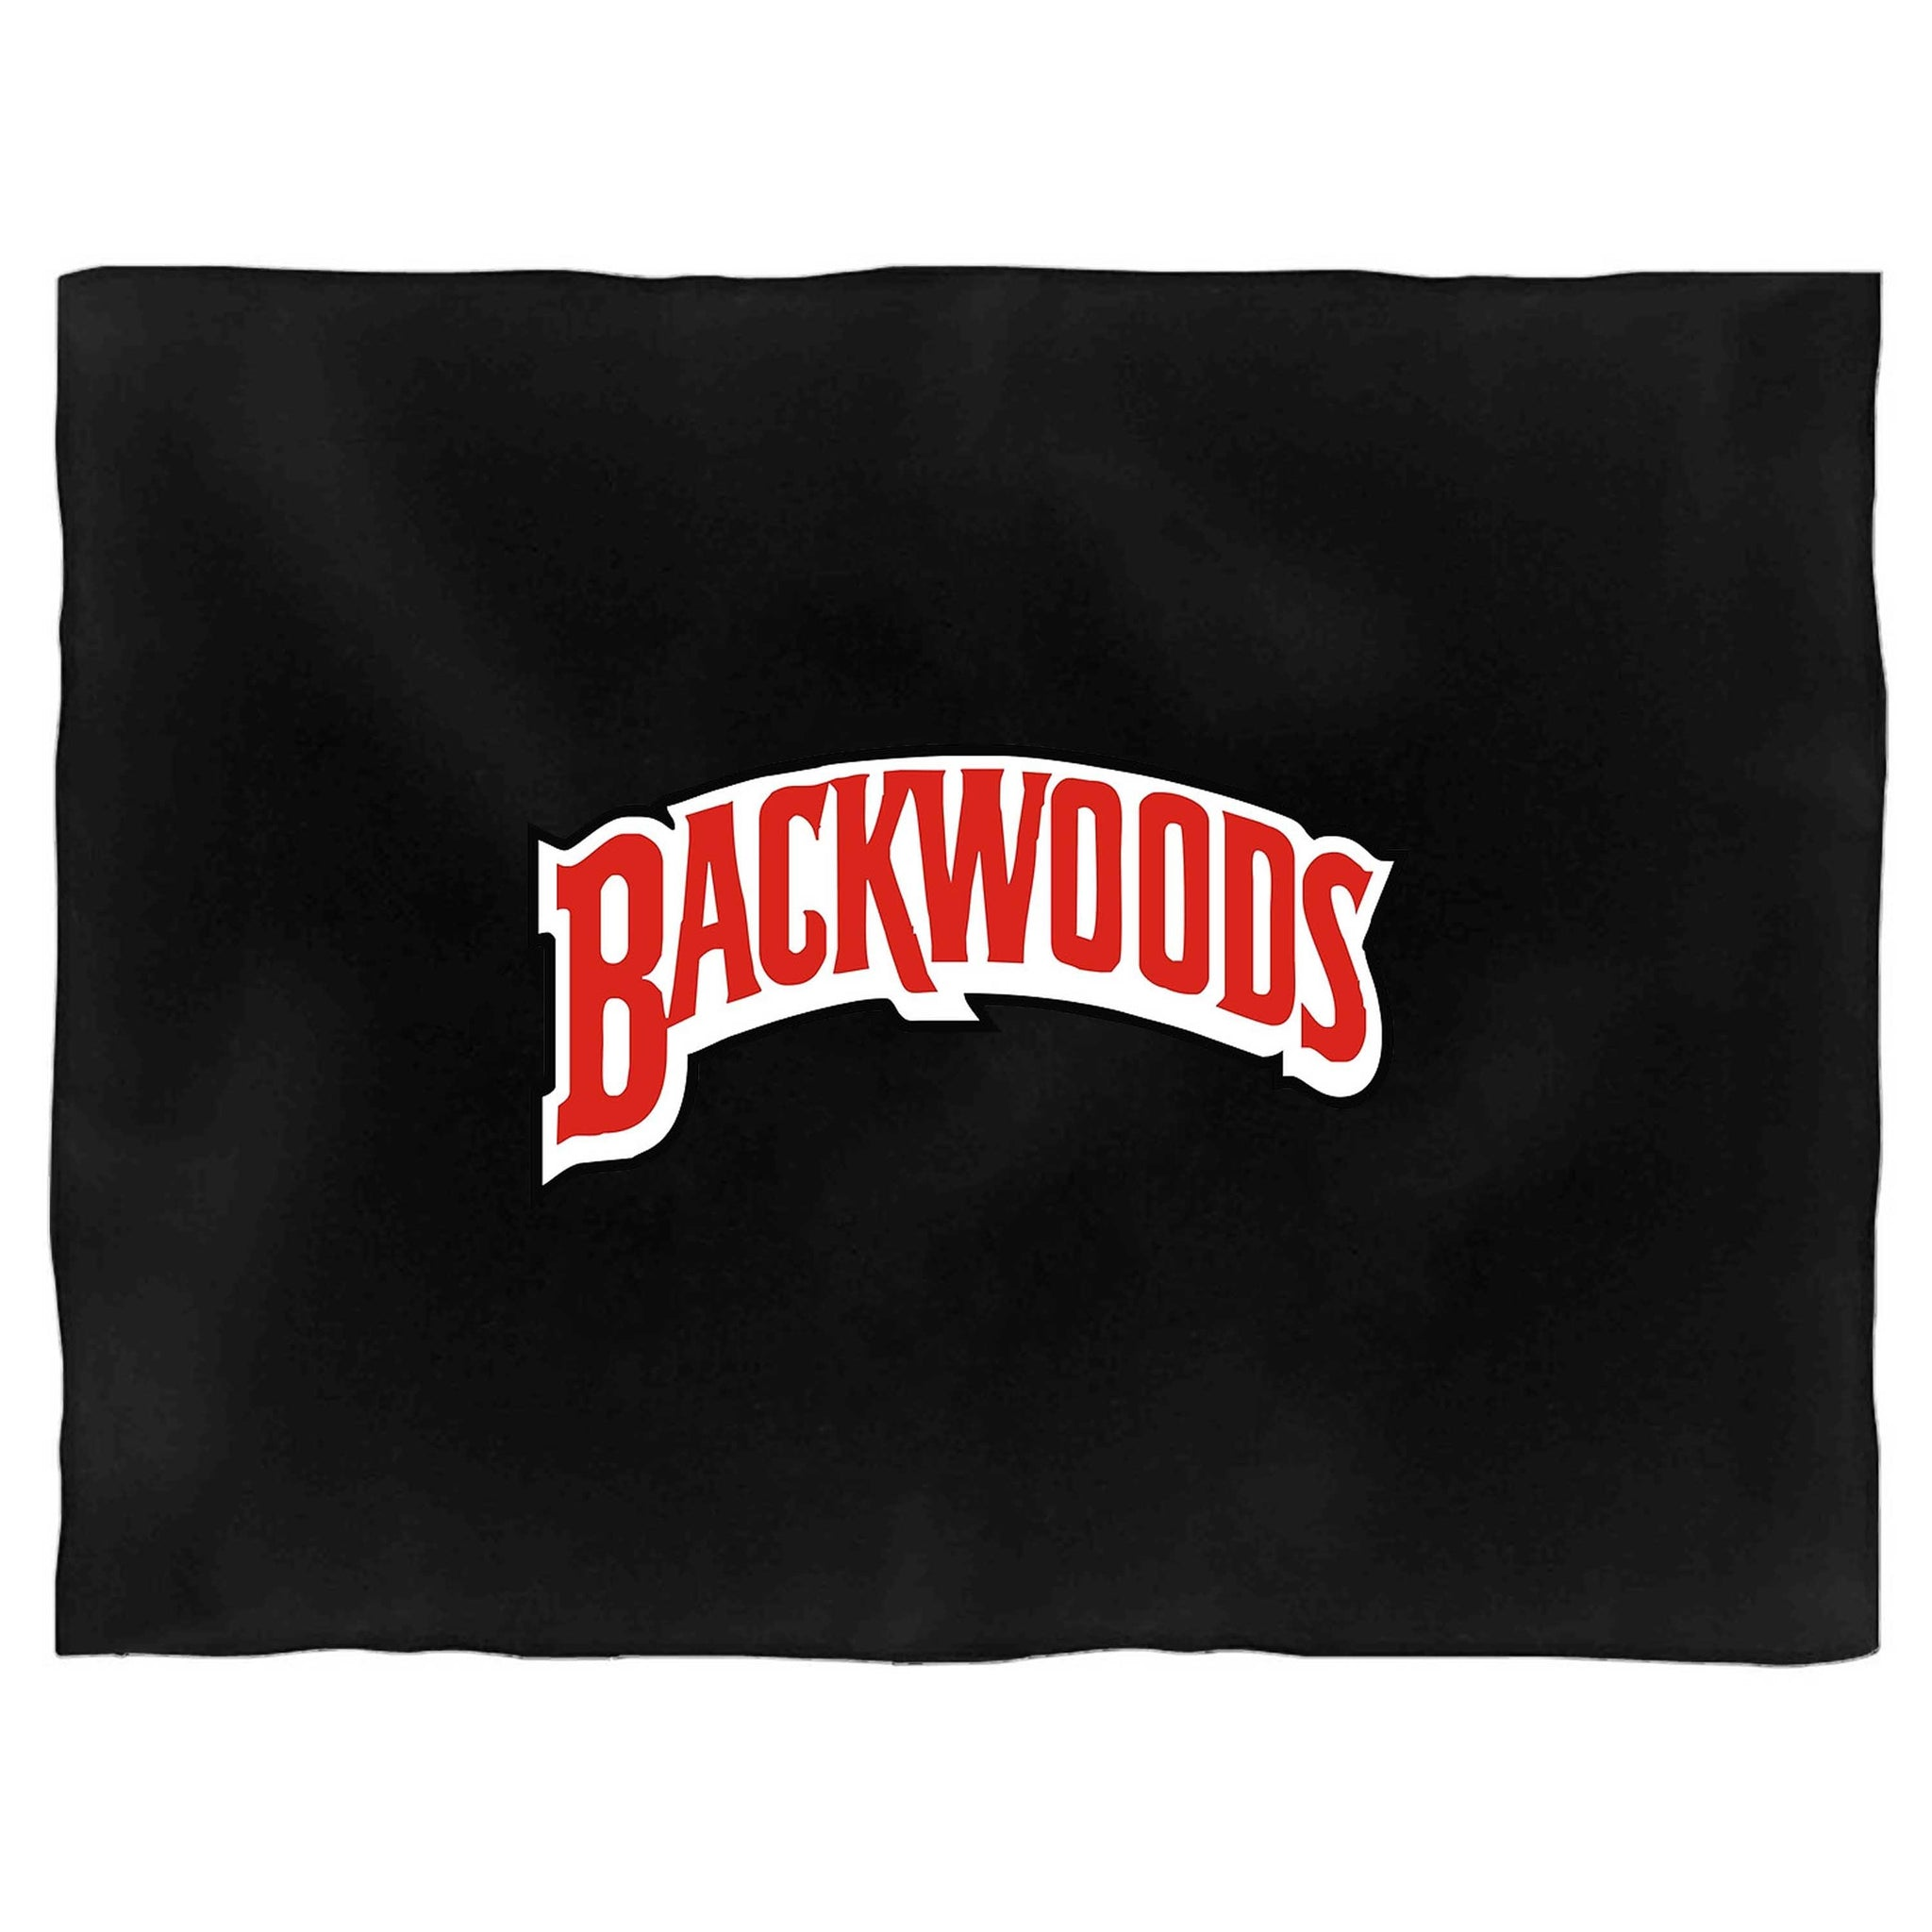 Backwoods Marijuana Rapper Blanket